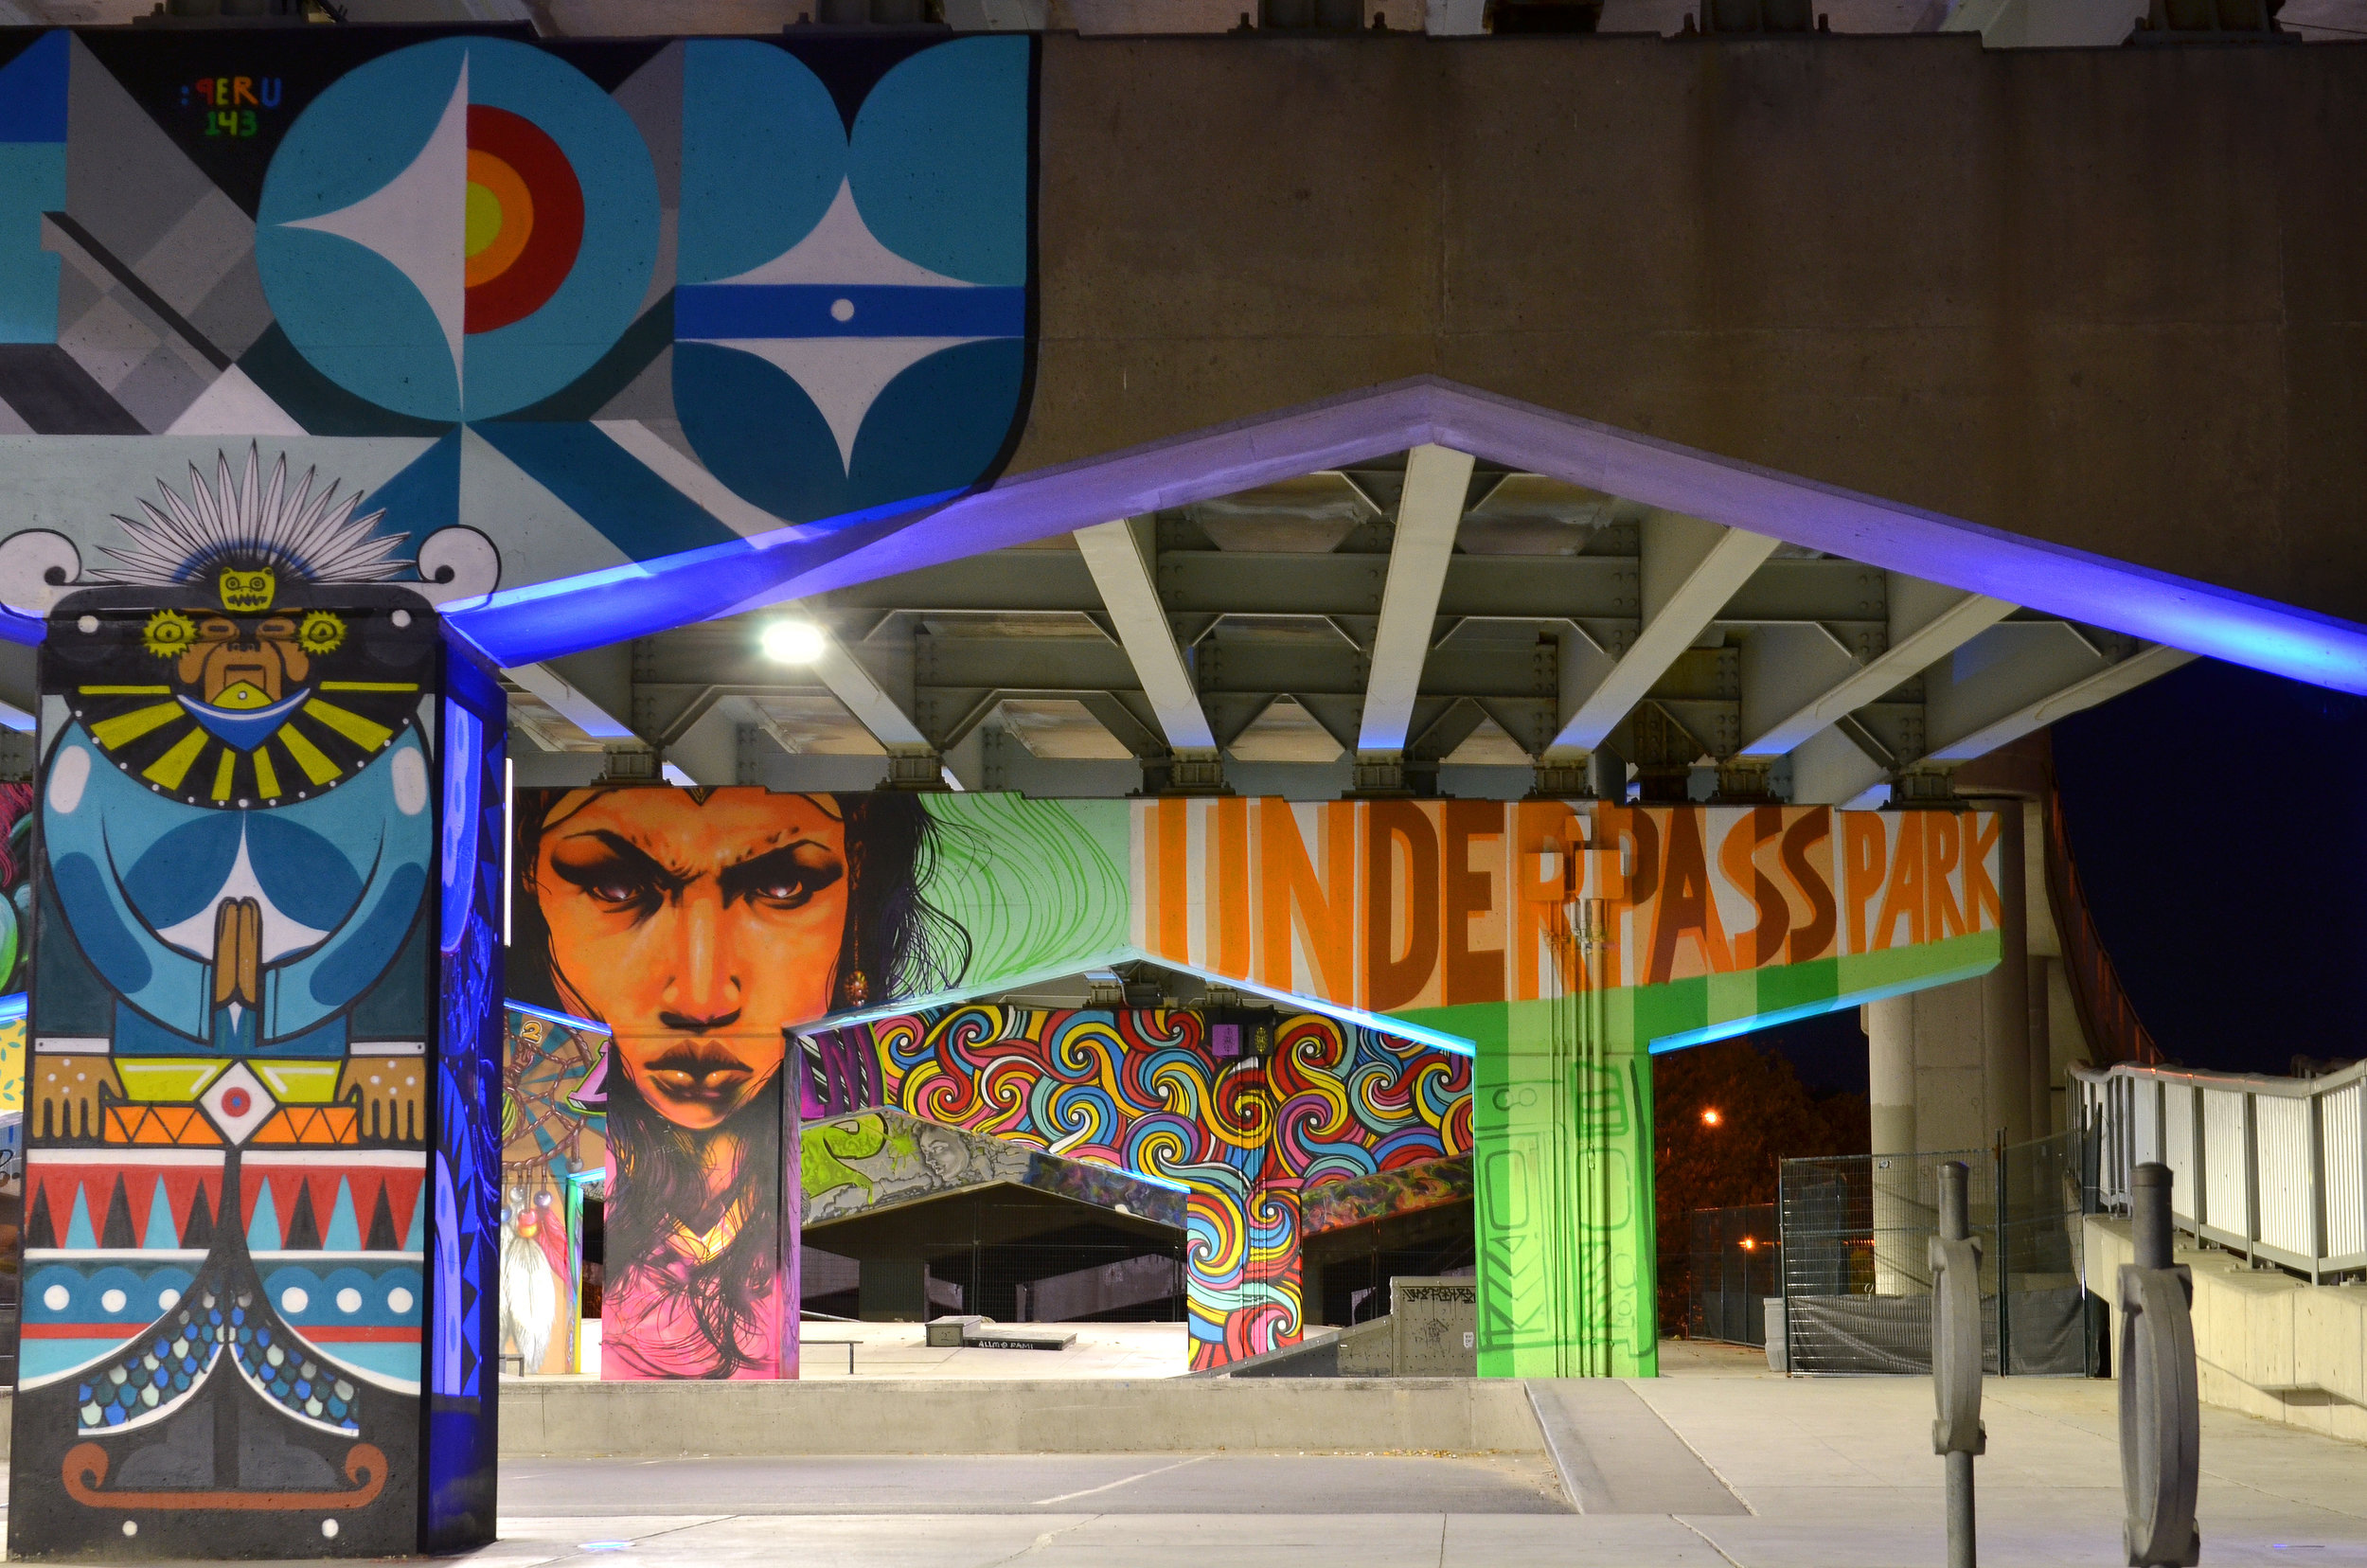 """From blog.waterfrontoronto.ca: """"The riotous graffiti artwork at Underpass Park takes full advantage of the imposing concrete beams and columns to create a fun and energetic atmosphere (Photo credit: Nicola Betts)."""""""